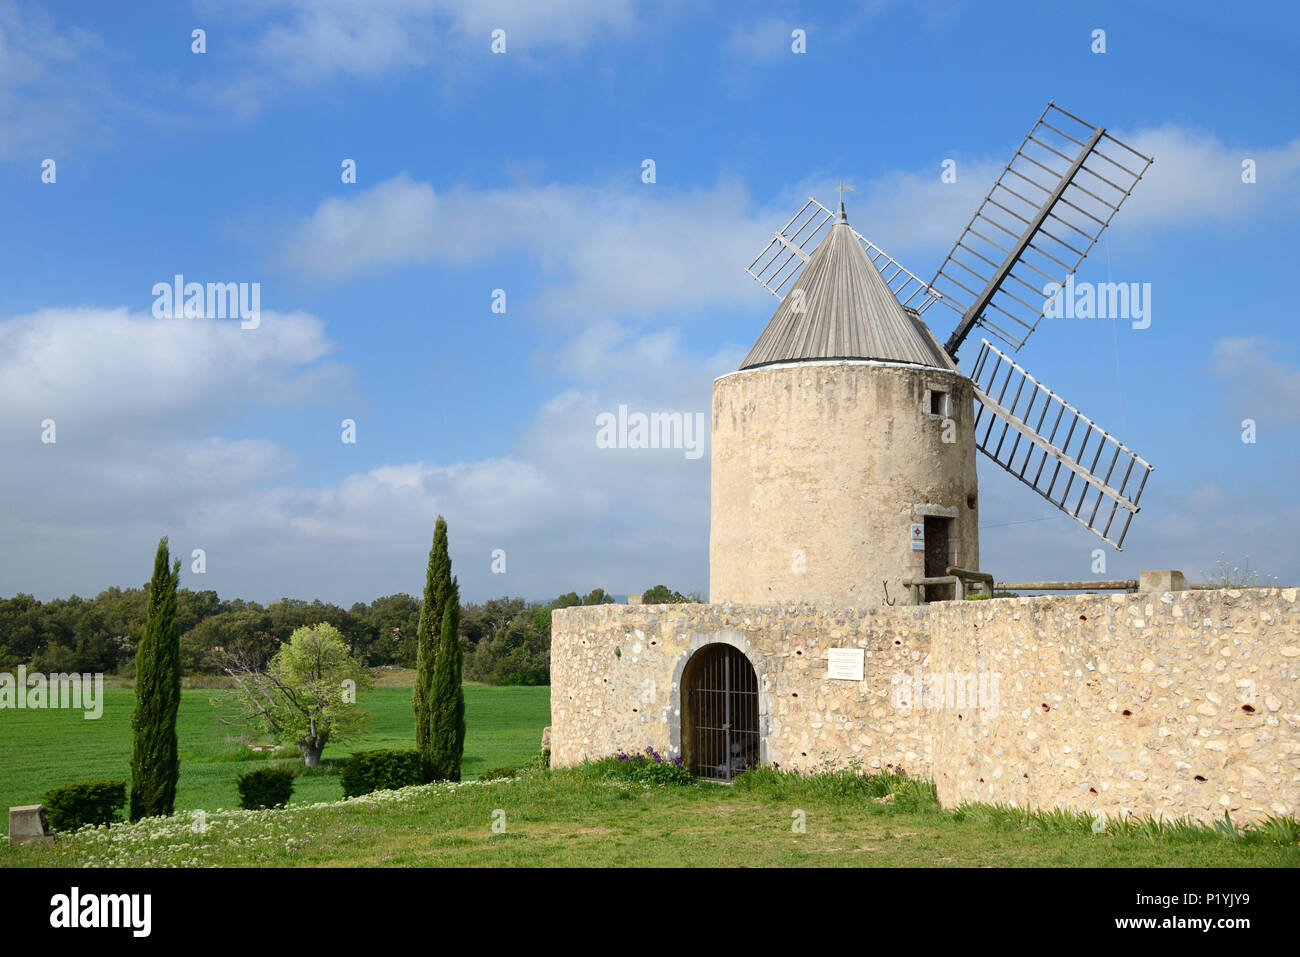 Traditional Provençal Stone Windmill at Regusse in the Var Provence France - Stock Image